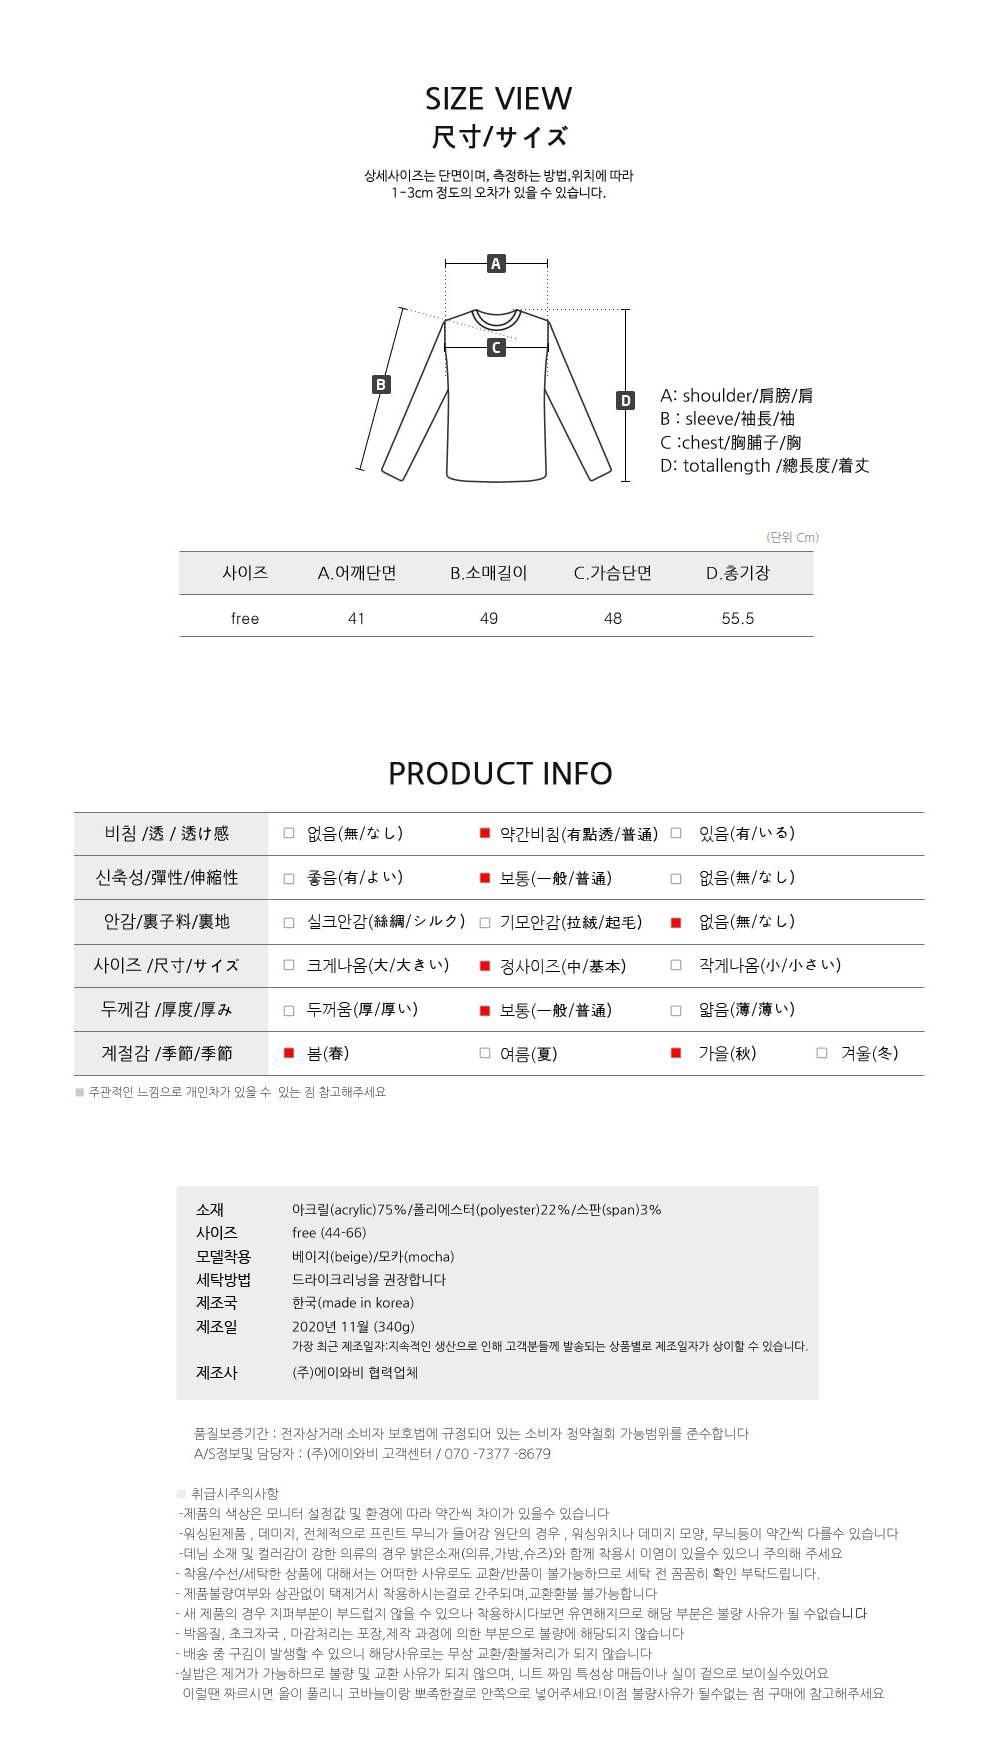 accessories product image-S1L2